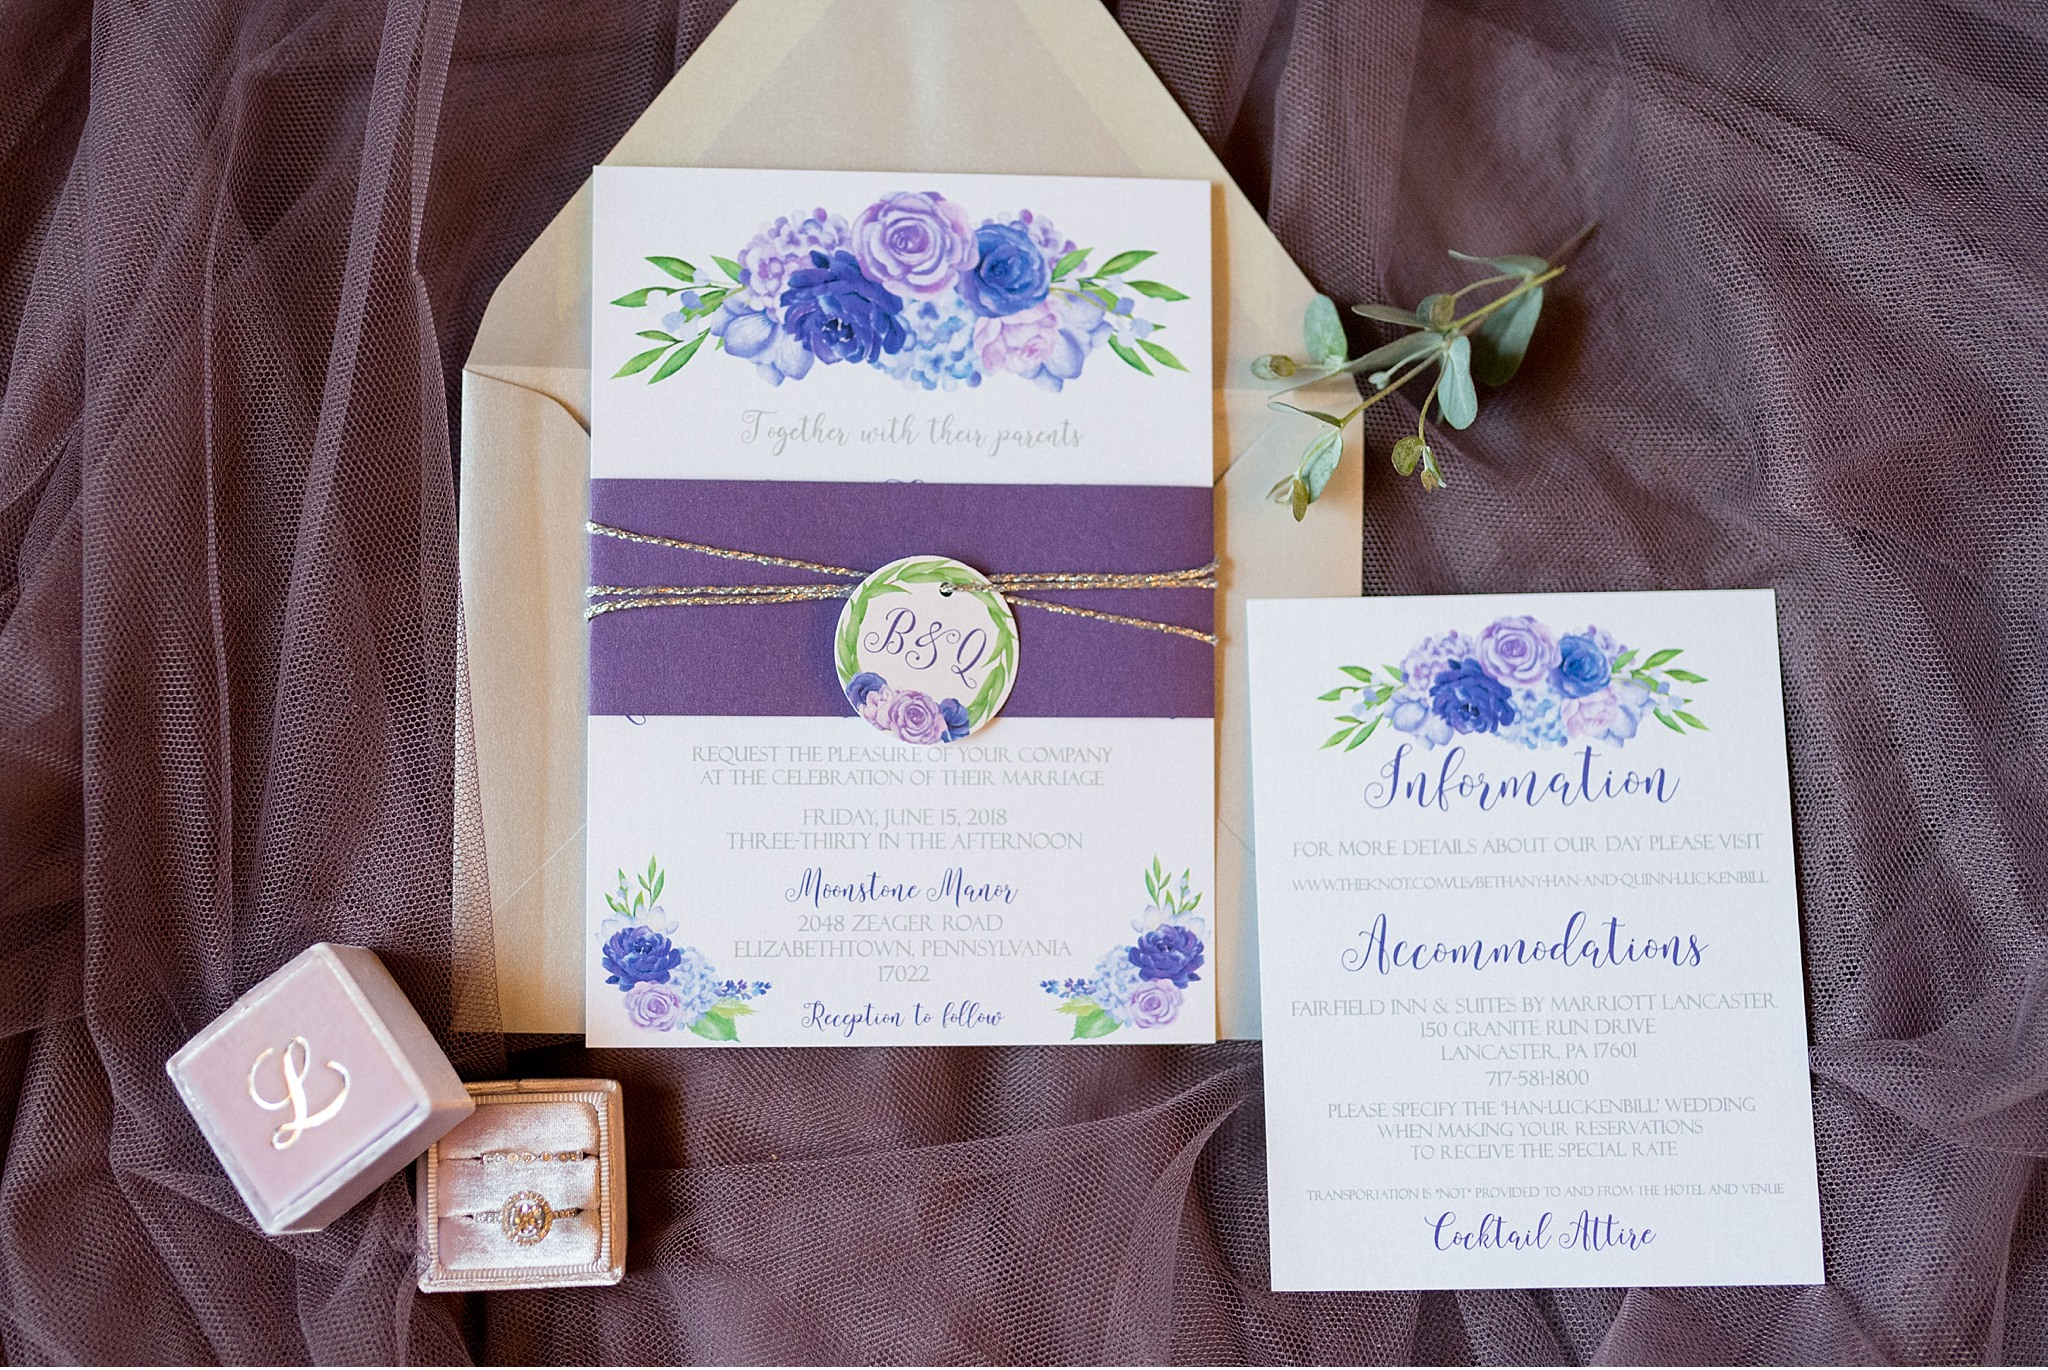 Invitation details Moonstone Manor Elizabethtown PA purple and grey wedding photography photo_1676.jpg